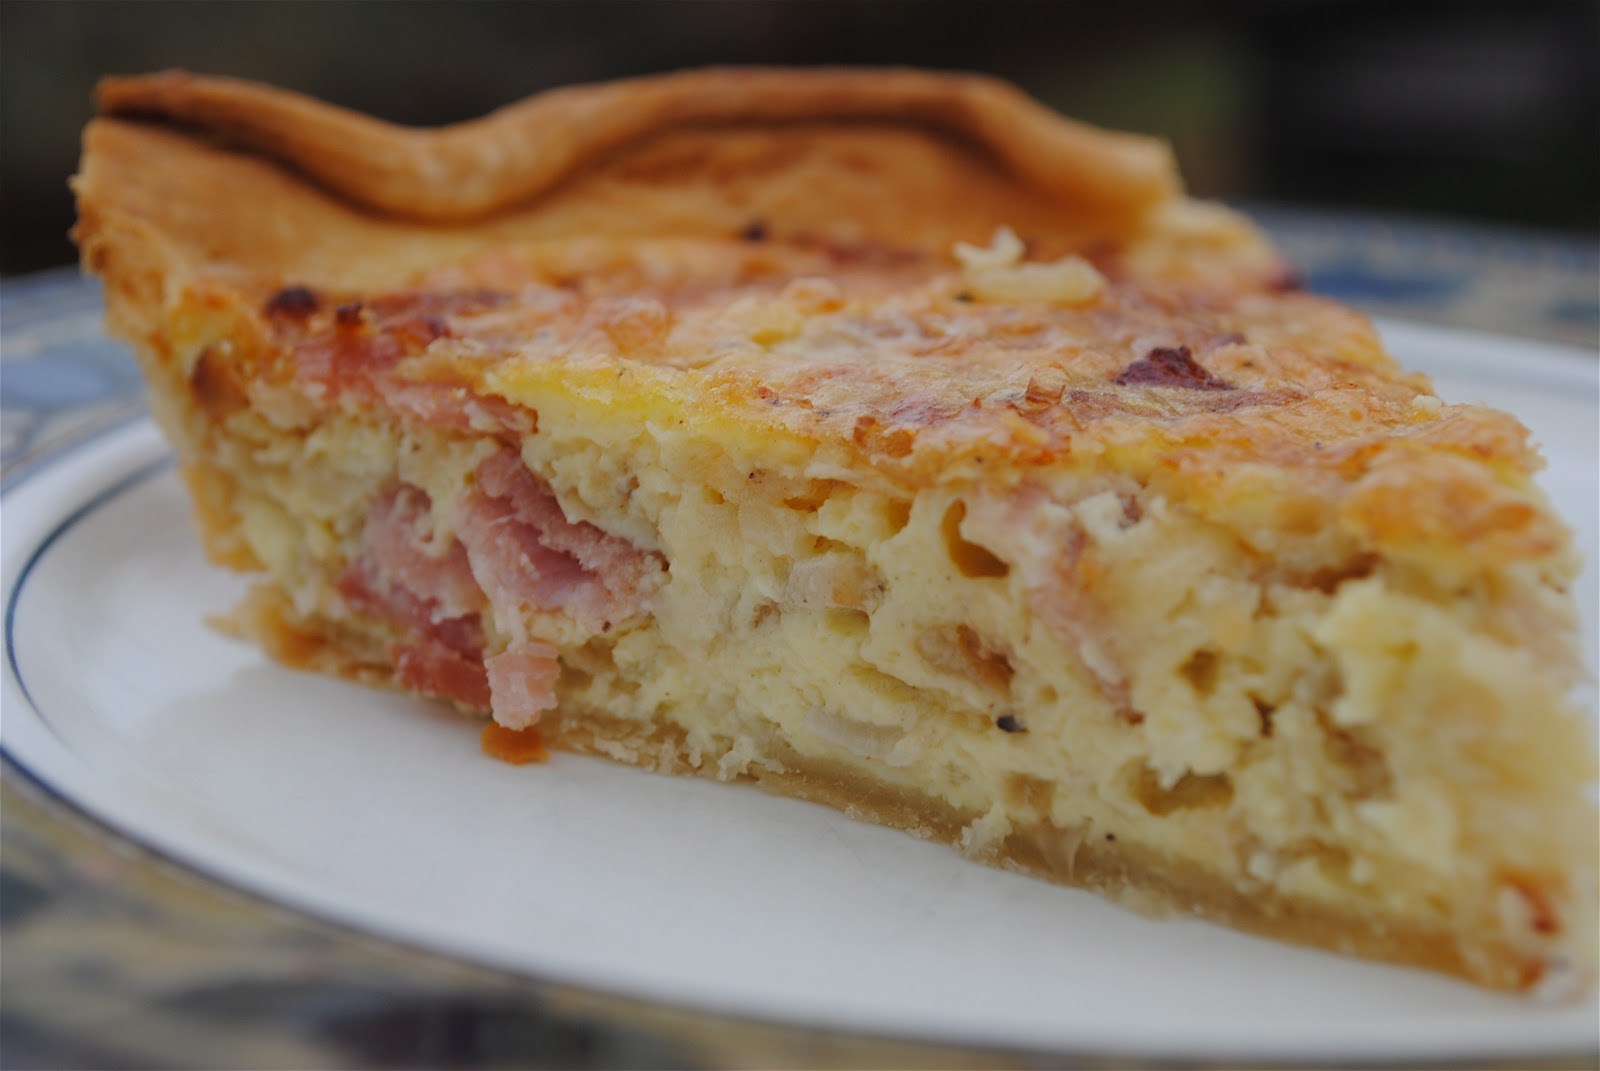 List of synonyms and antonyms of the word onion and cheddar quiche cheese and onion quiche recipes food network uk forumfinder